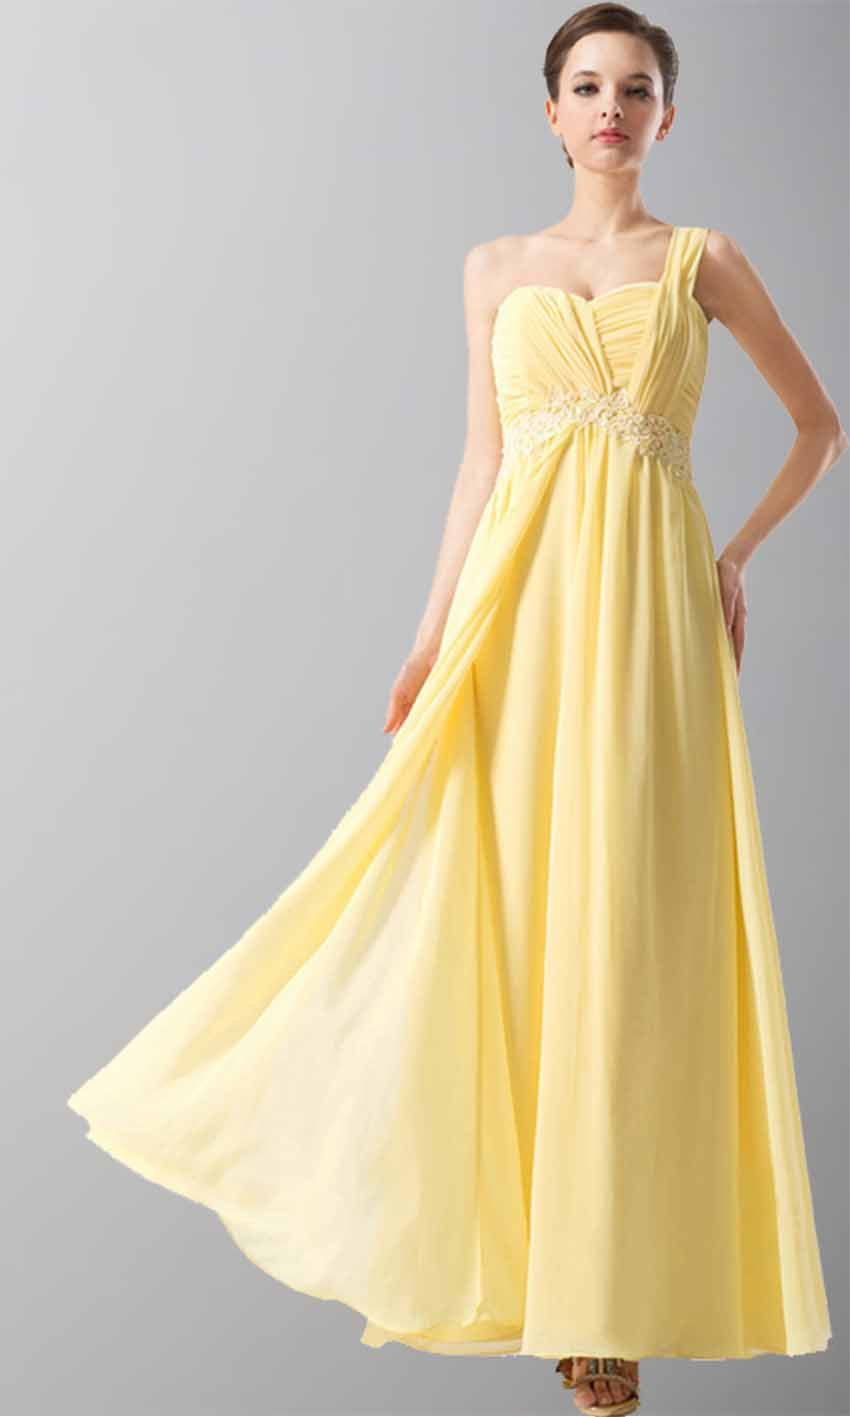 Sweet heart one shoulder yellow long chiffon prom dresses ksp